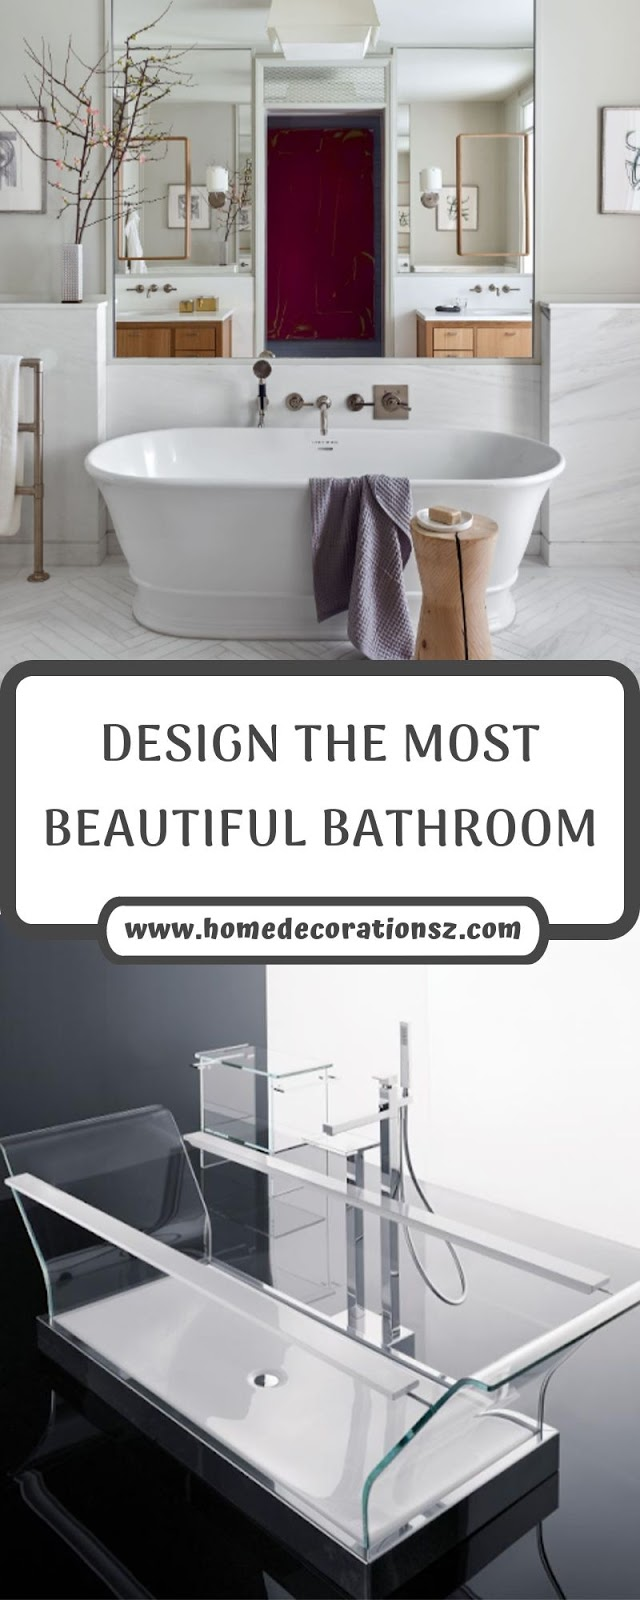 DESIGN THE MOST BEAUTIFUL BATHROOM